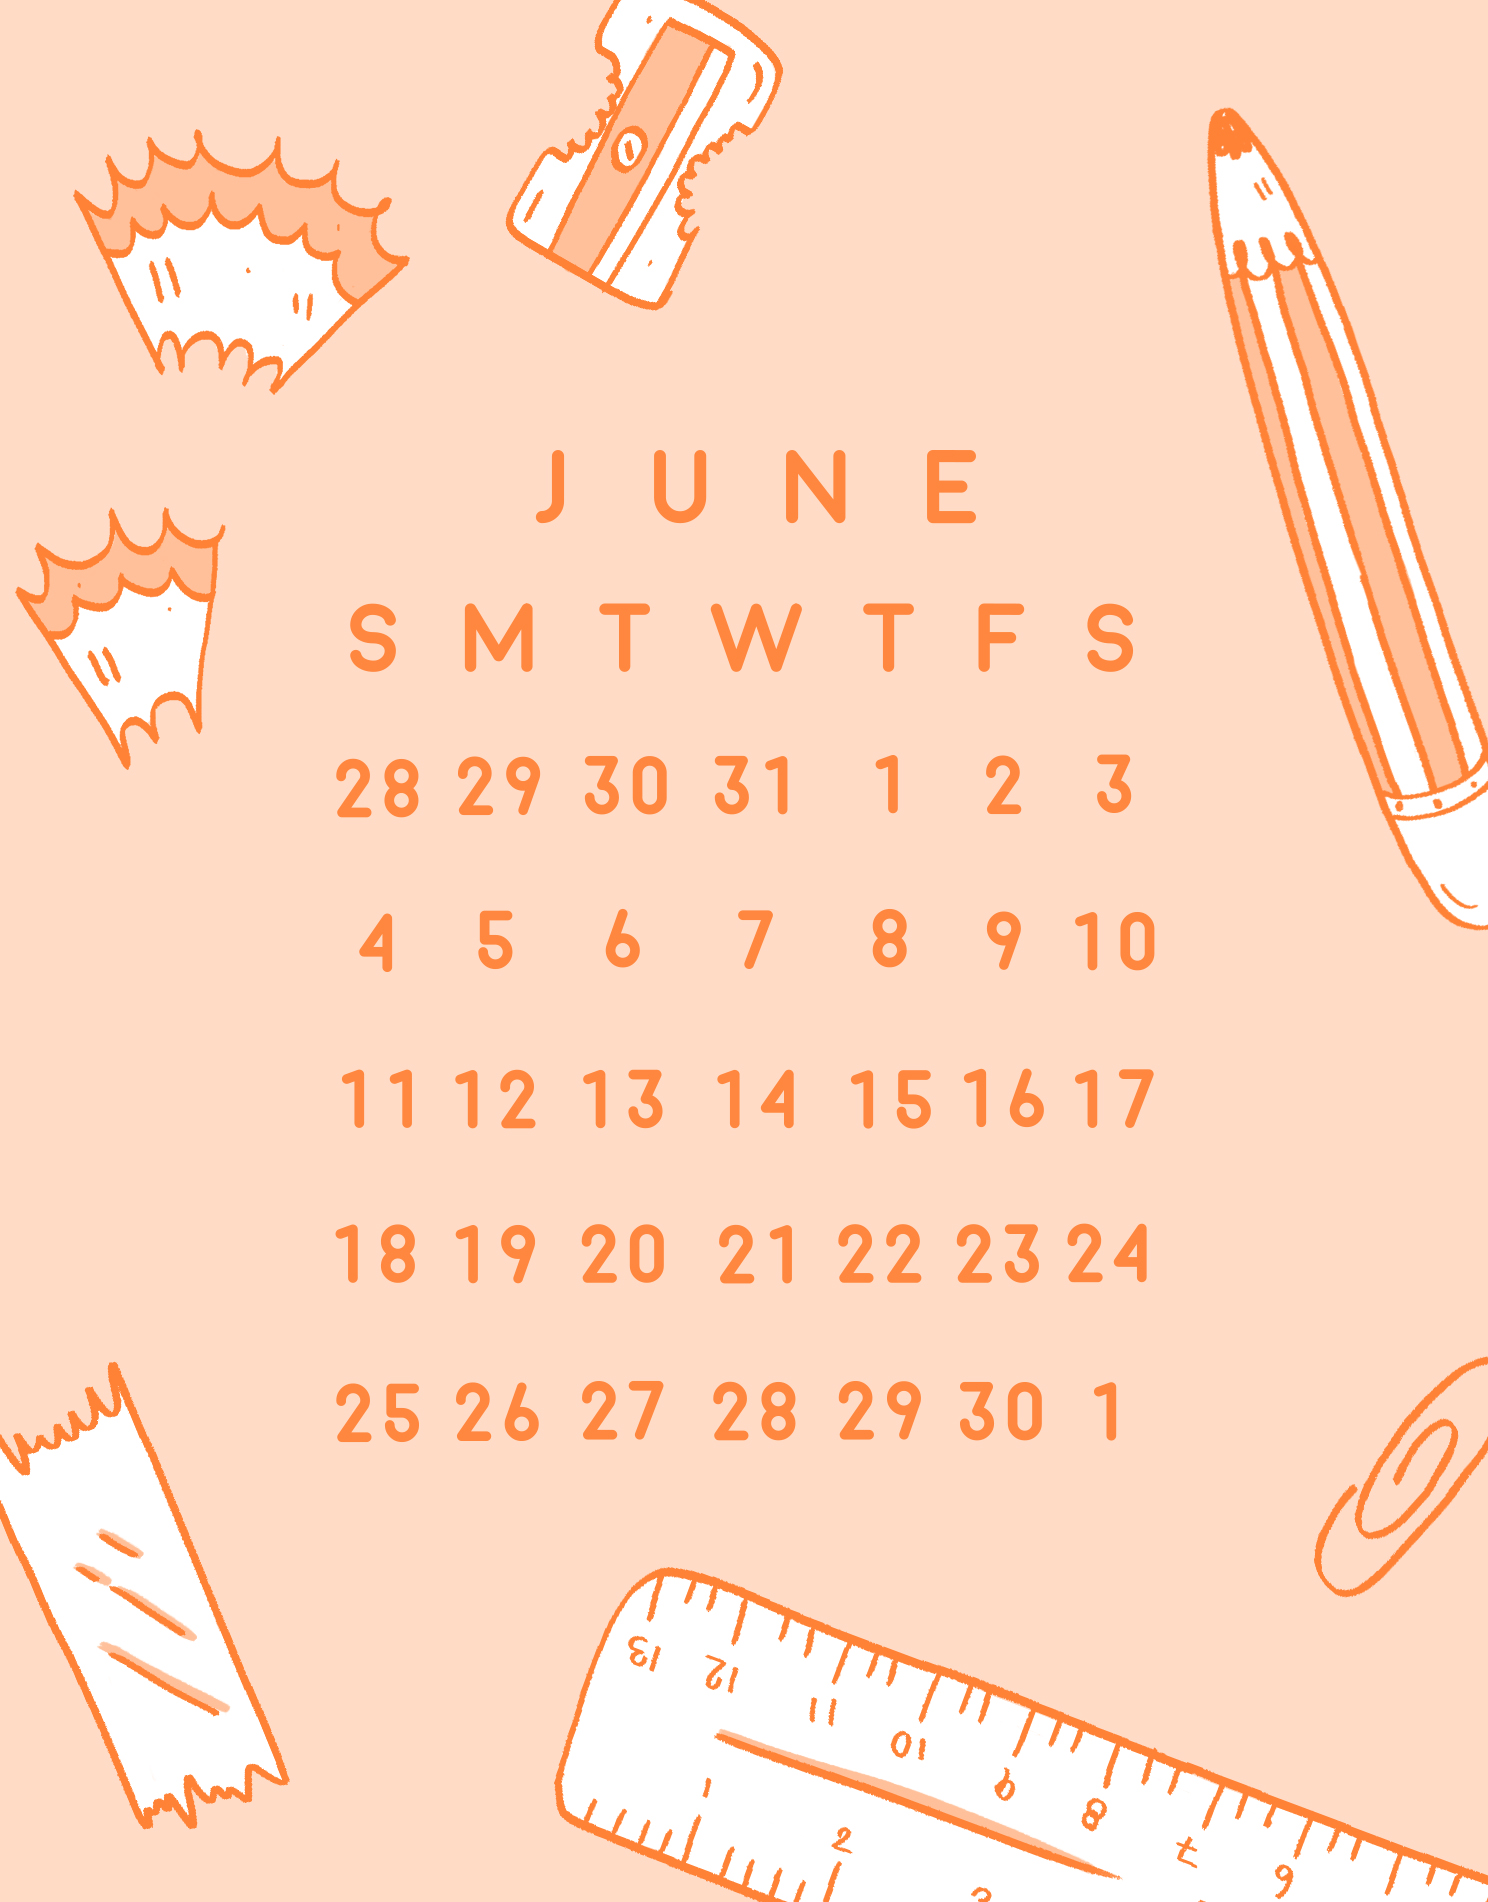 Click me to download the calendar!